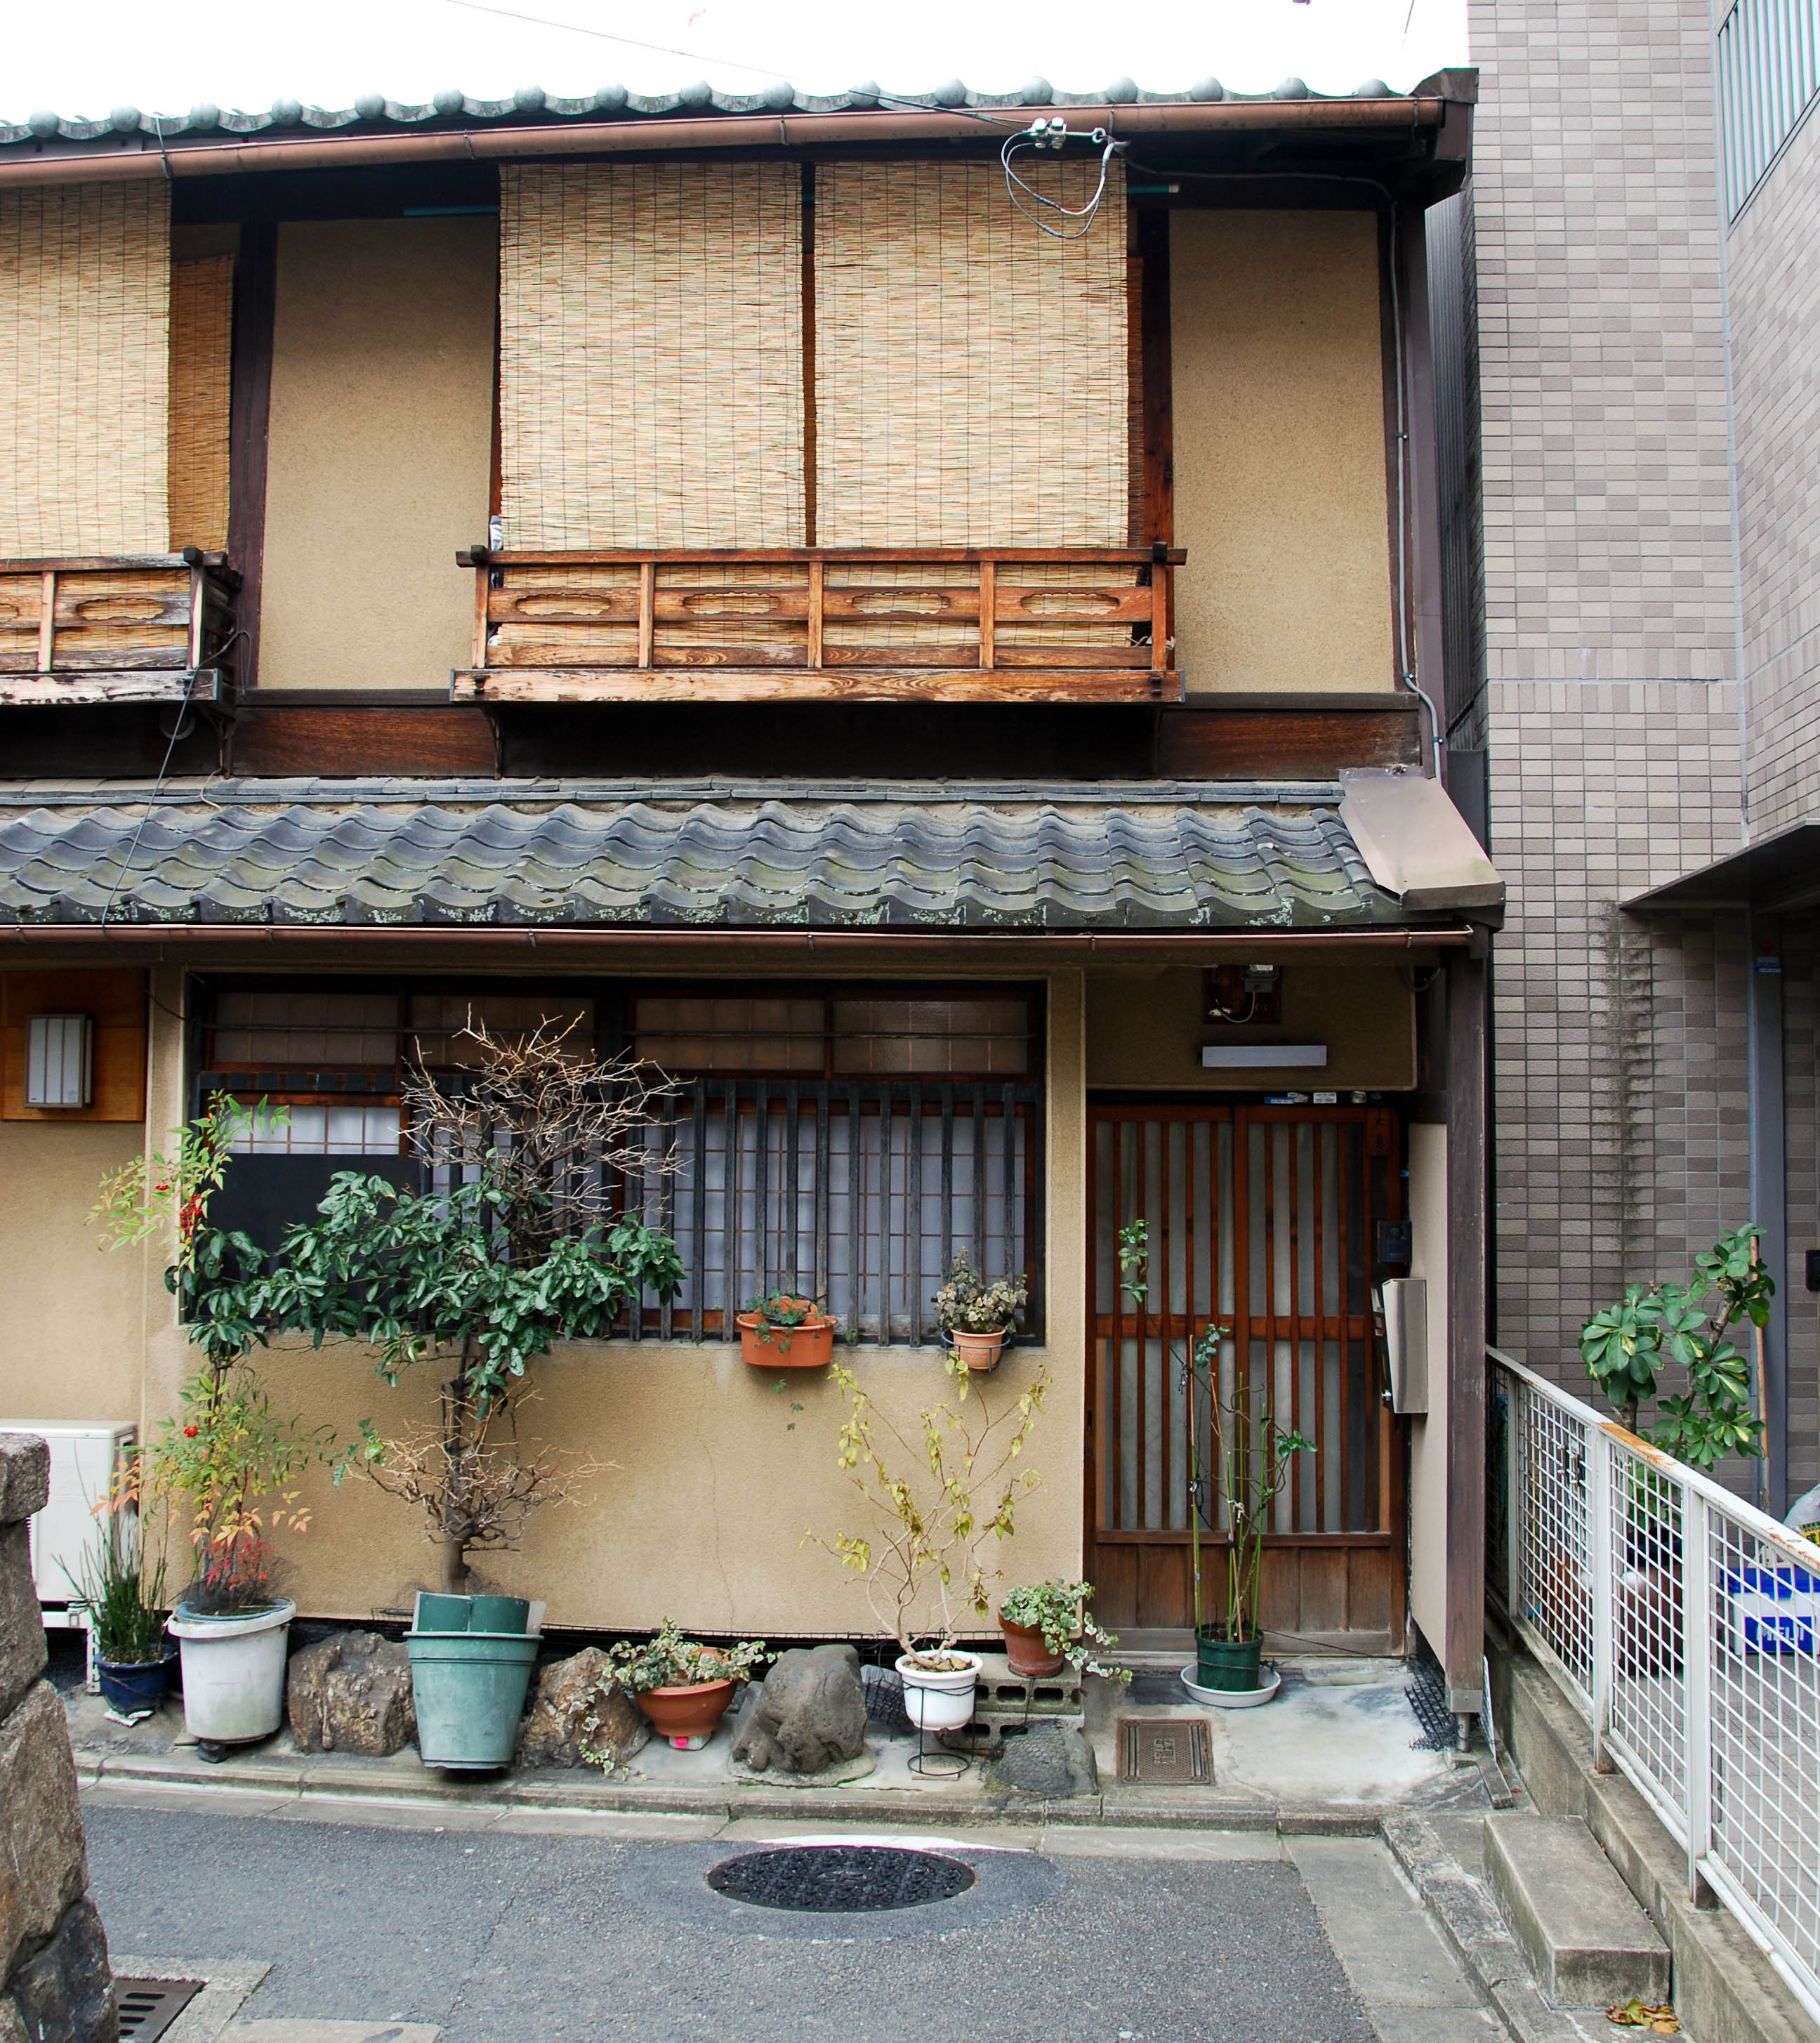 Typical Japanese Home Images